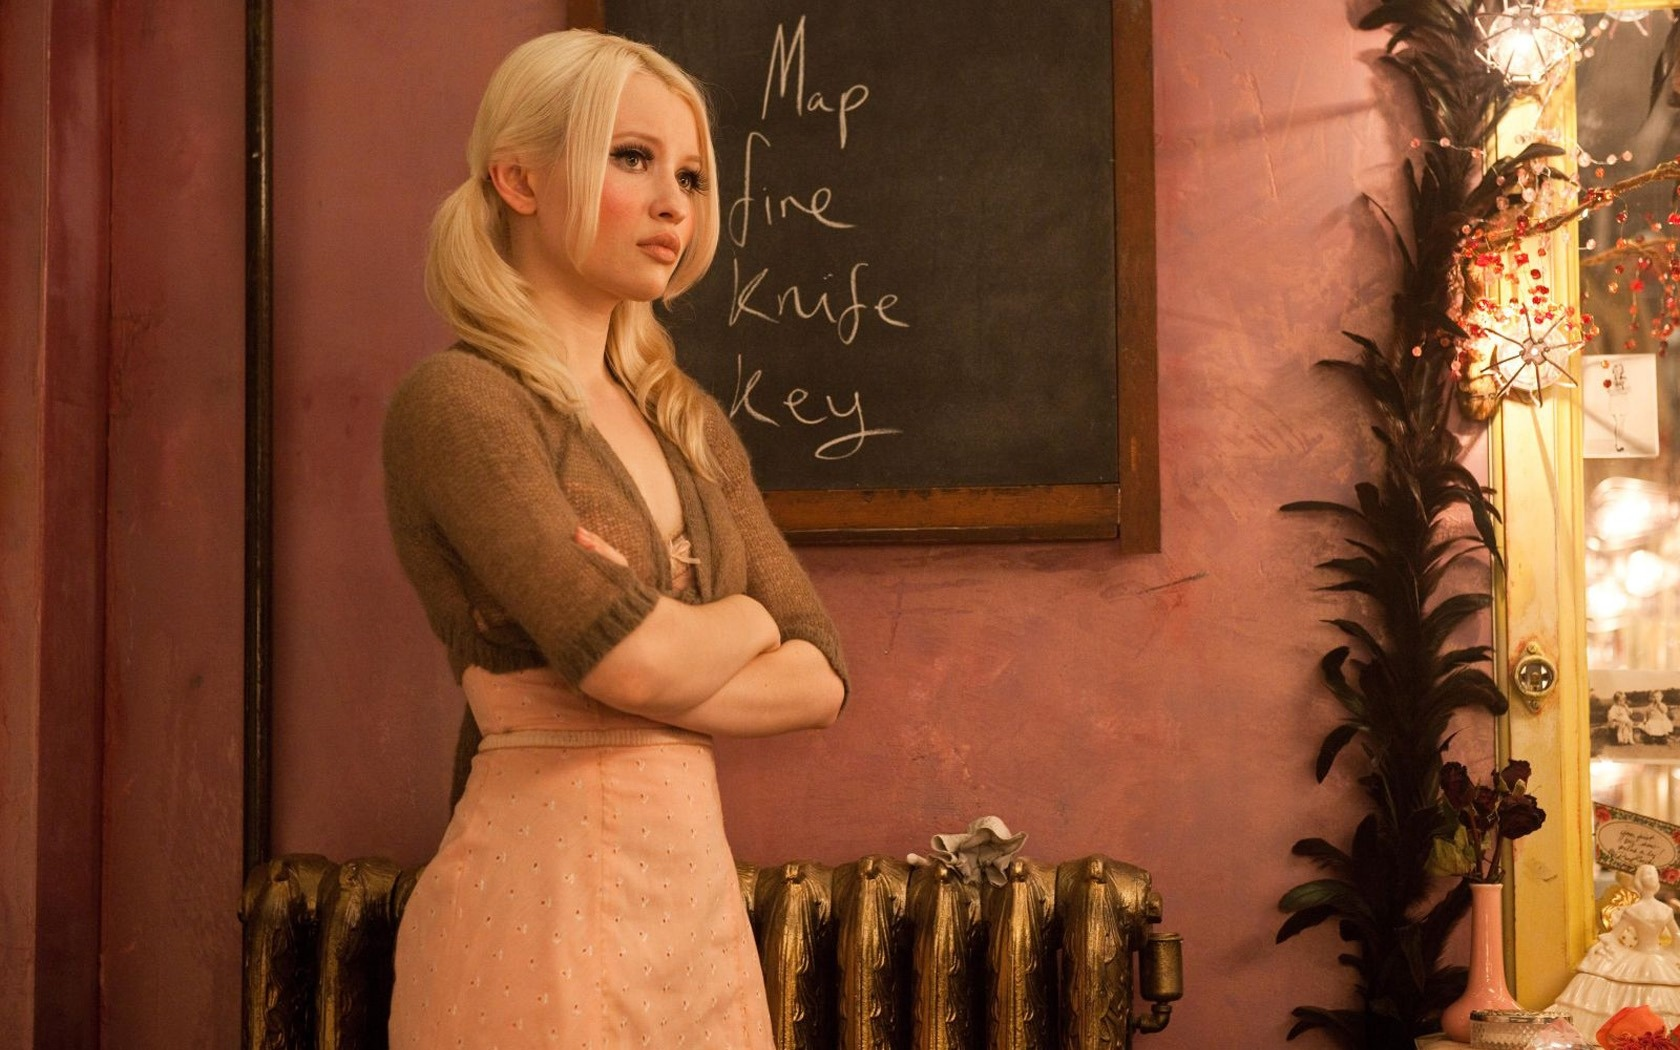 emily browning in sucker punch 2011 wallpapers in jpg format for